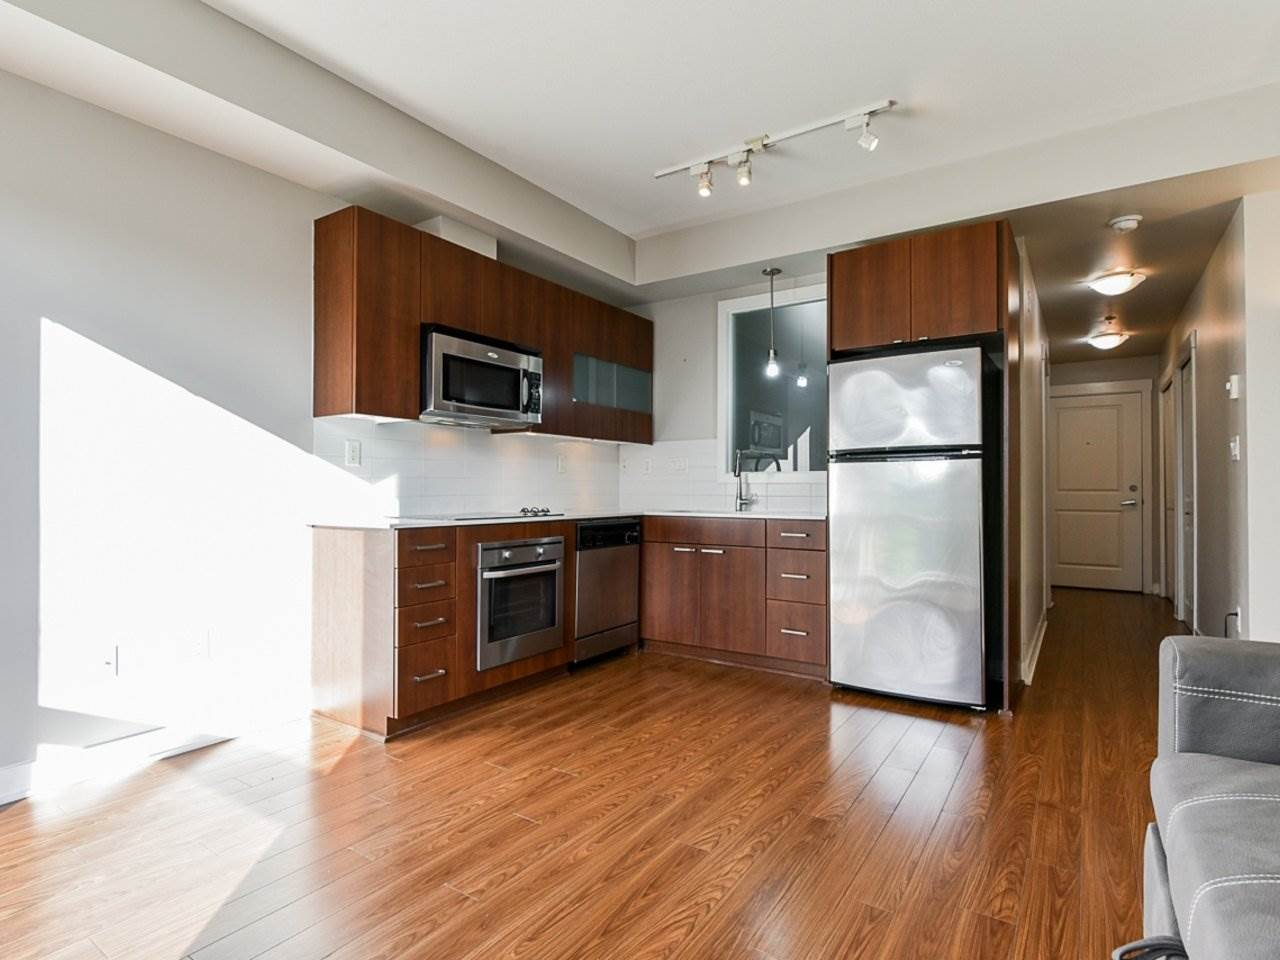 329 13321 102A AVENUE - Whalley Apartment/Condo for sale, 1 Bedroom (R2508611) - #9